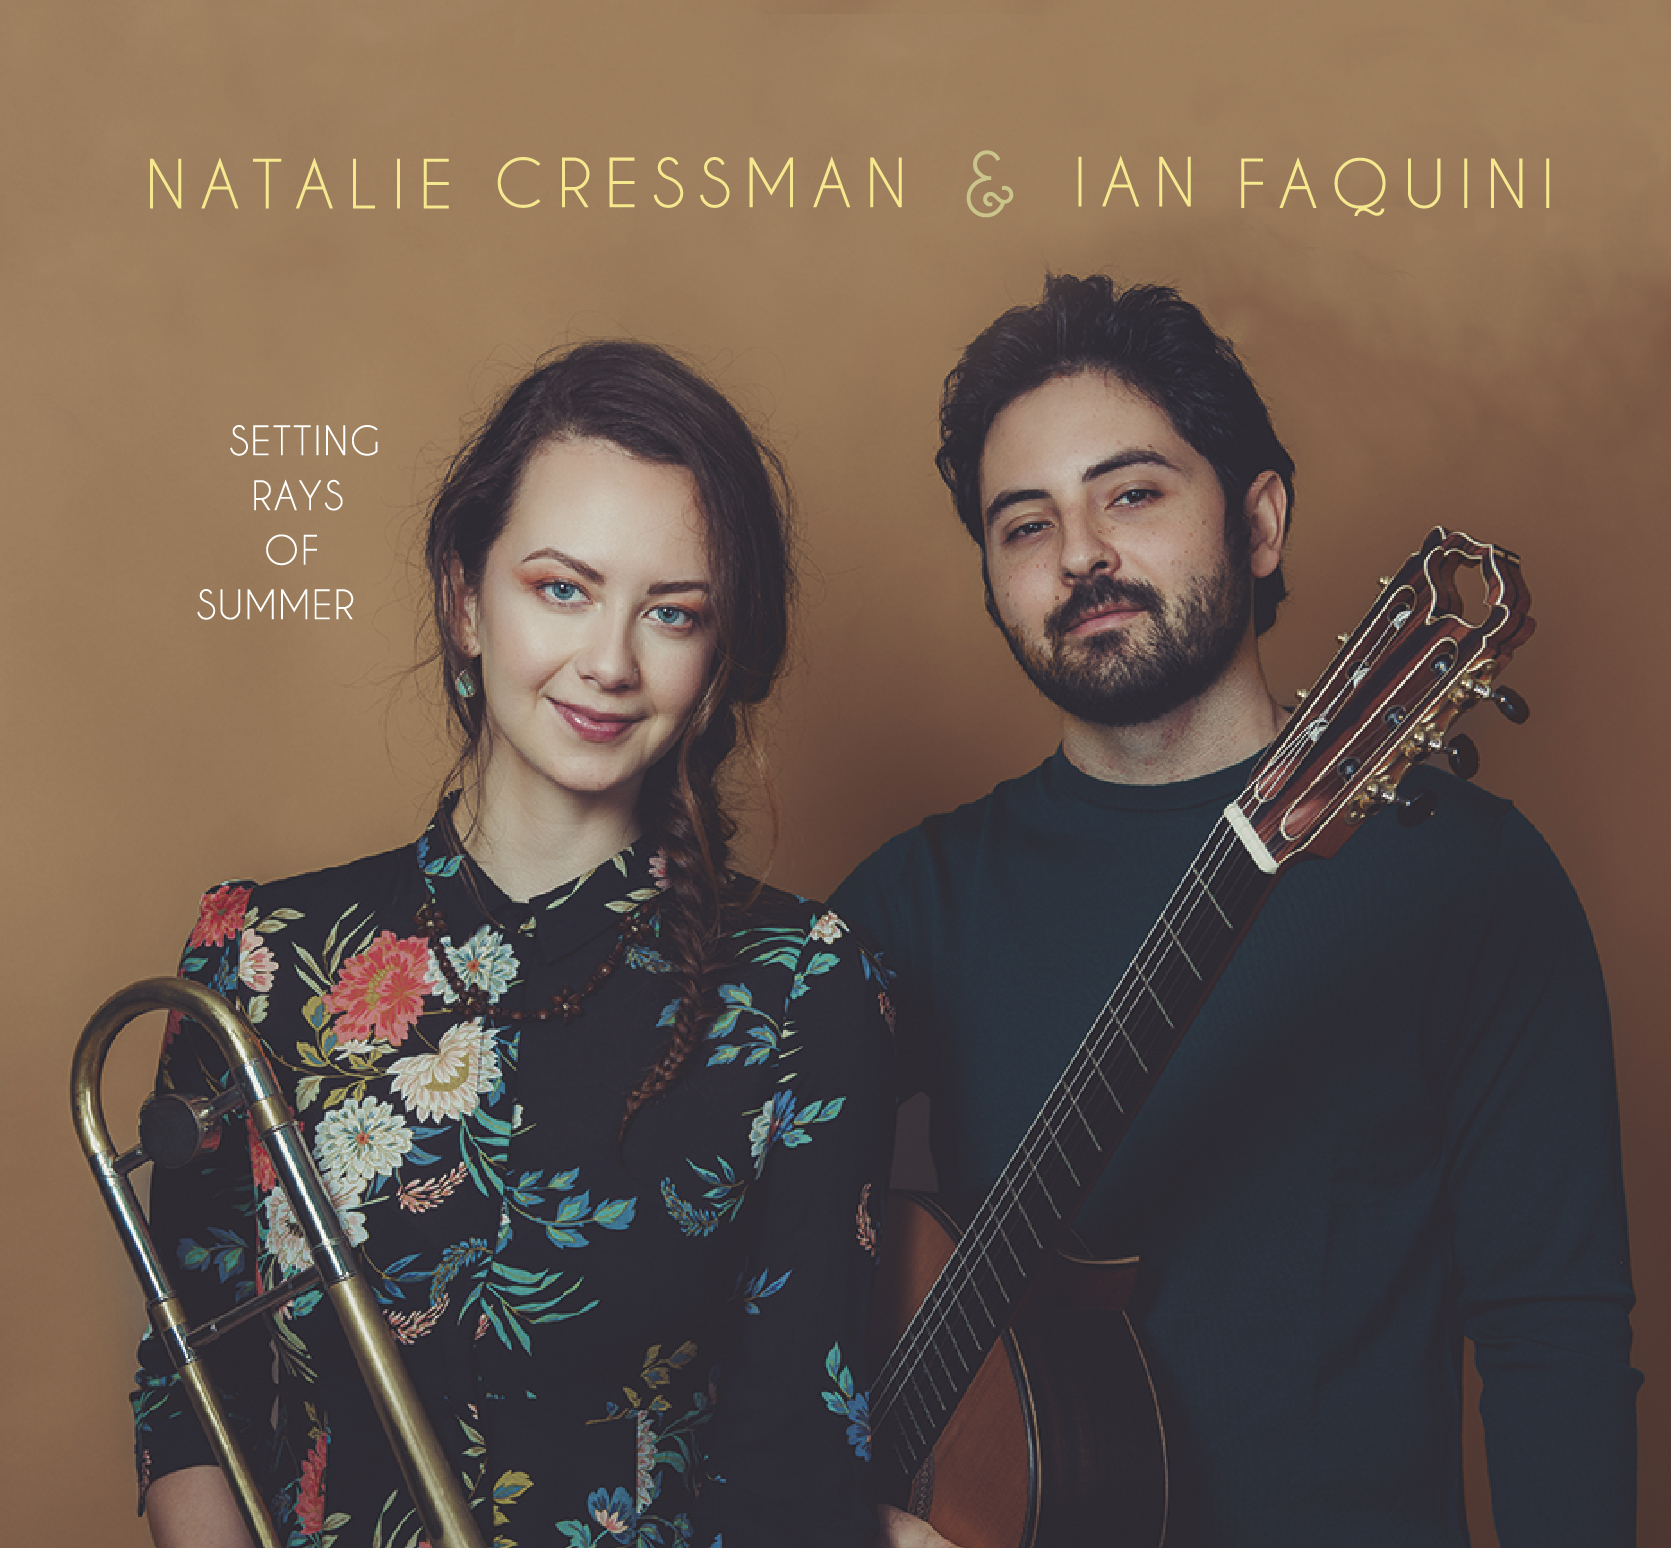 """REVIEW: Natalie Cressman & Ian Faquini: """"Setting Rays of Summer"""" Named """"Ringer of the Week"""" by Jazz Weekly"""